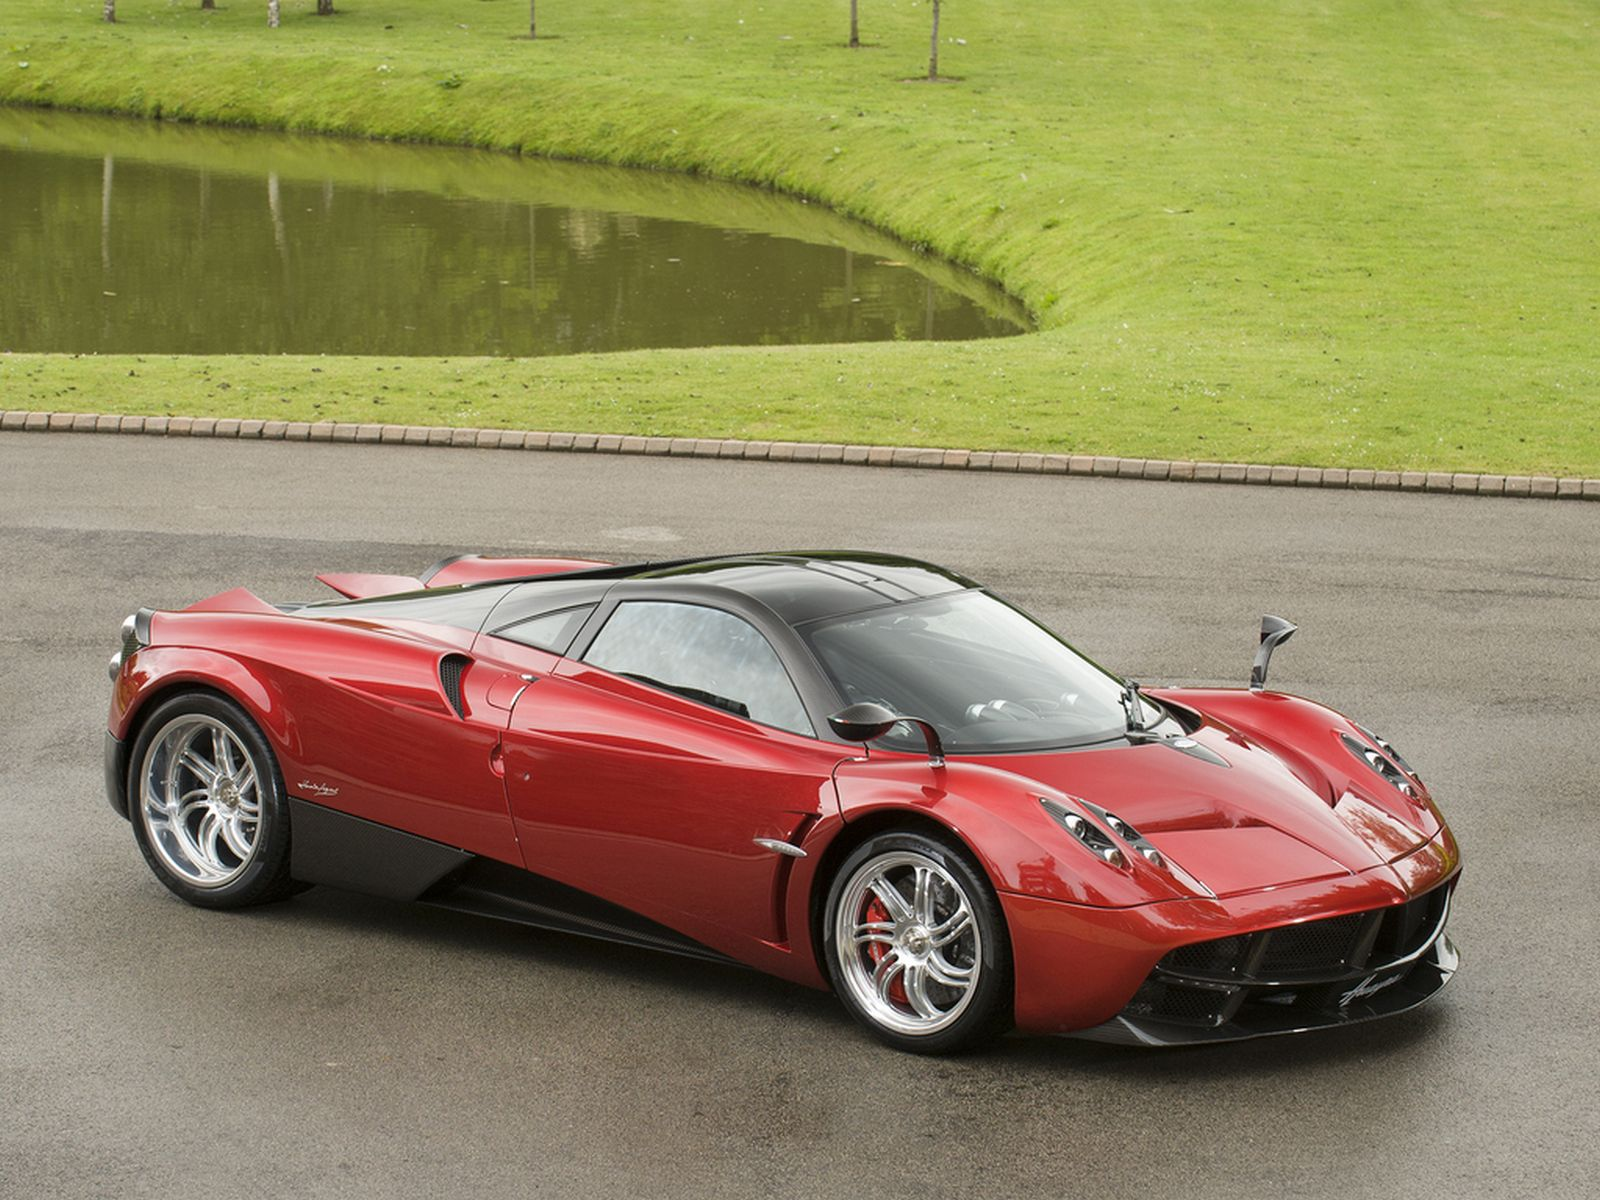 Eye-catching Red Pagani Huayra For Sale in the UK - GTspirit